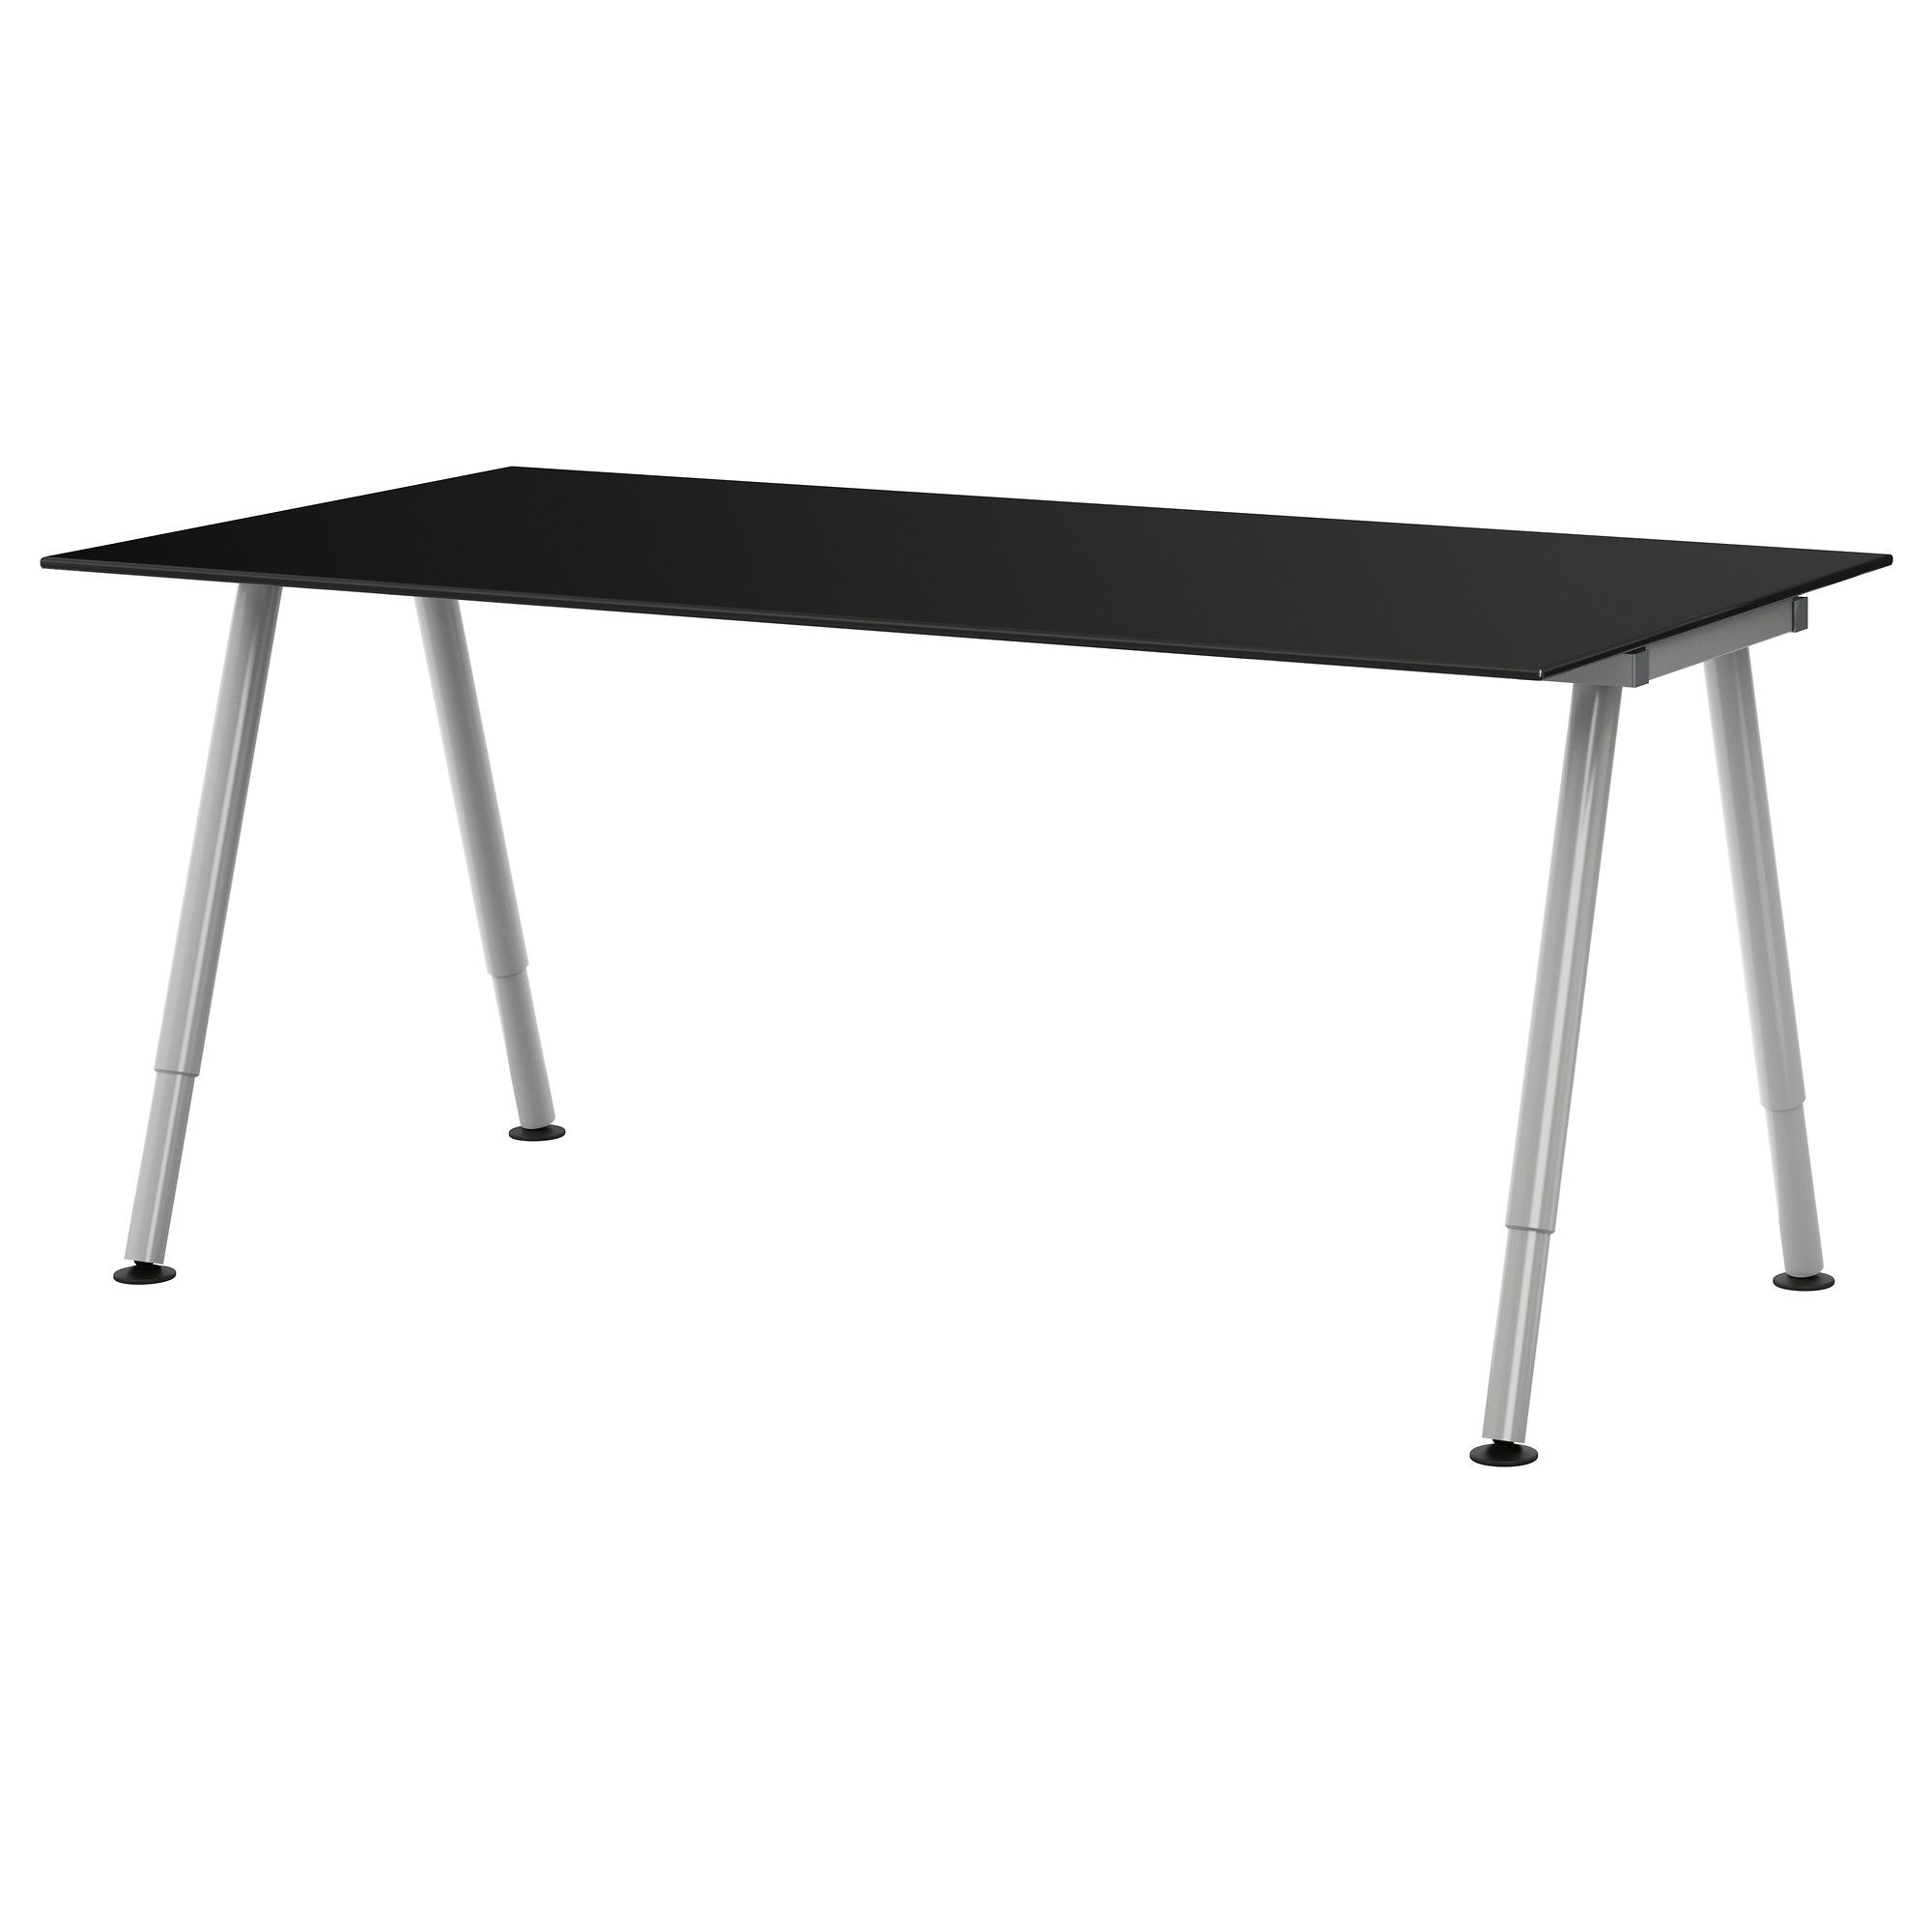 Ikea glass table desk - Galant Desk Glass Black A Leg Silver Color Ikea